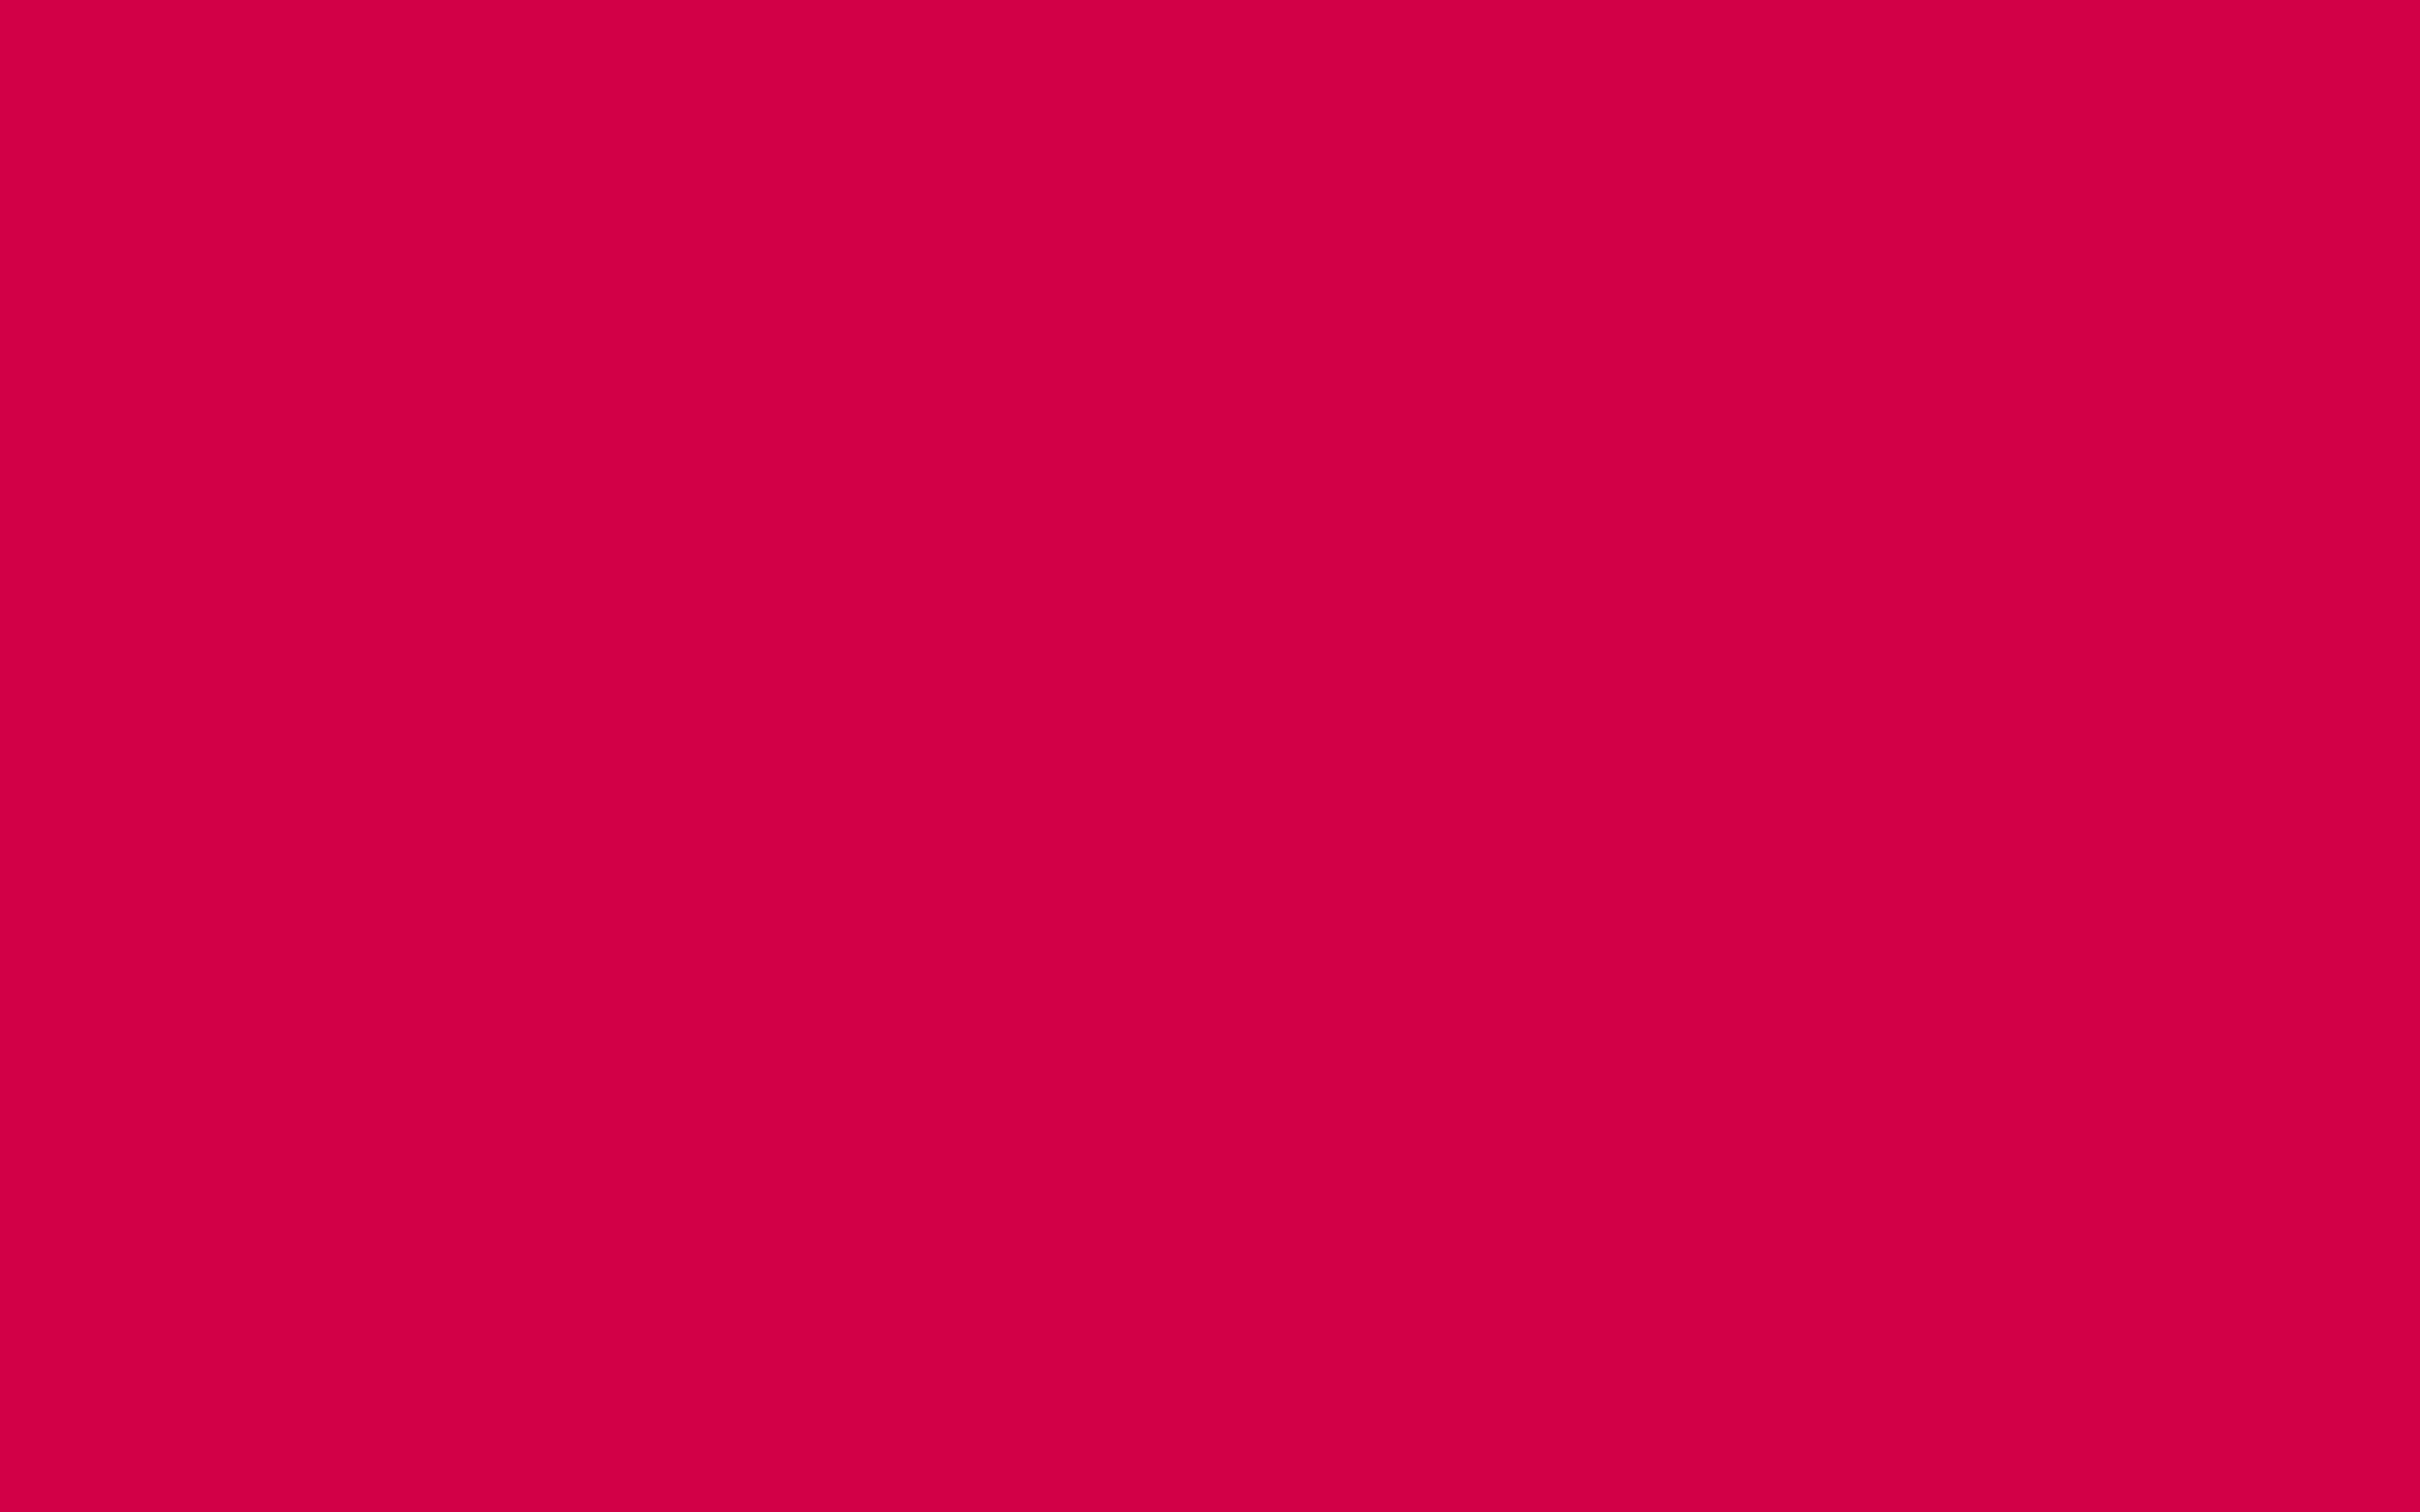 2560x1600 Spanish Carmine Solid Color Background